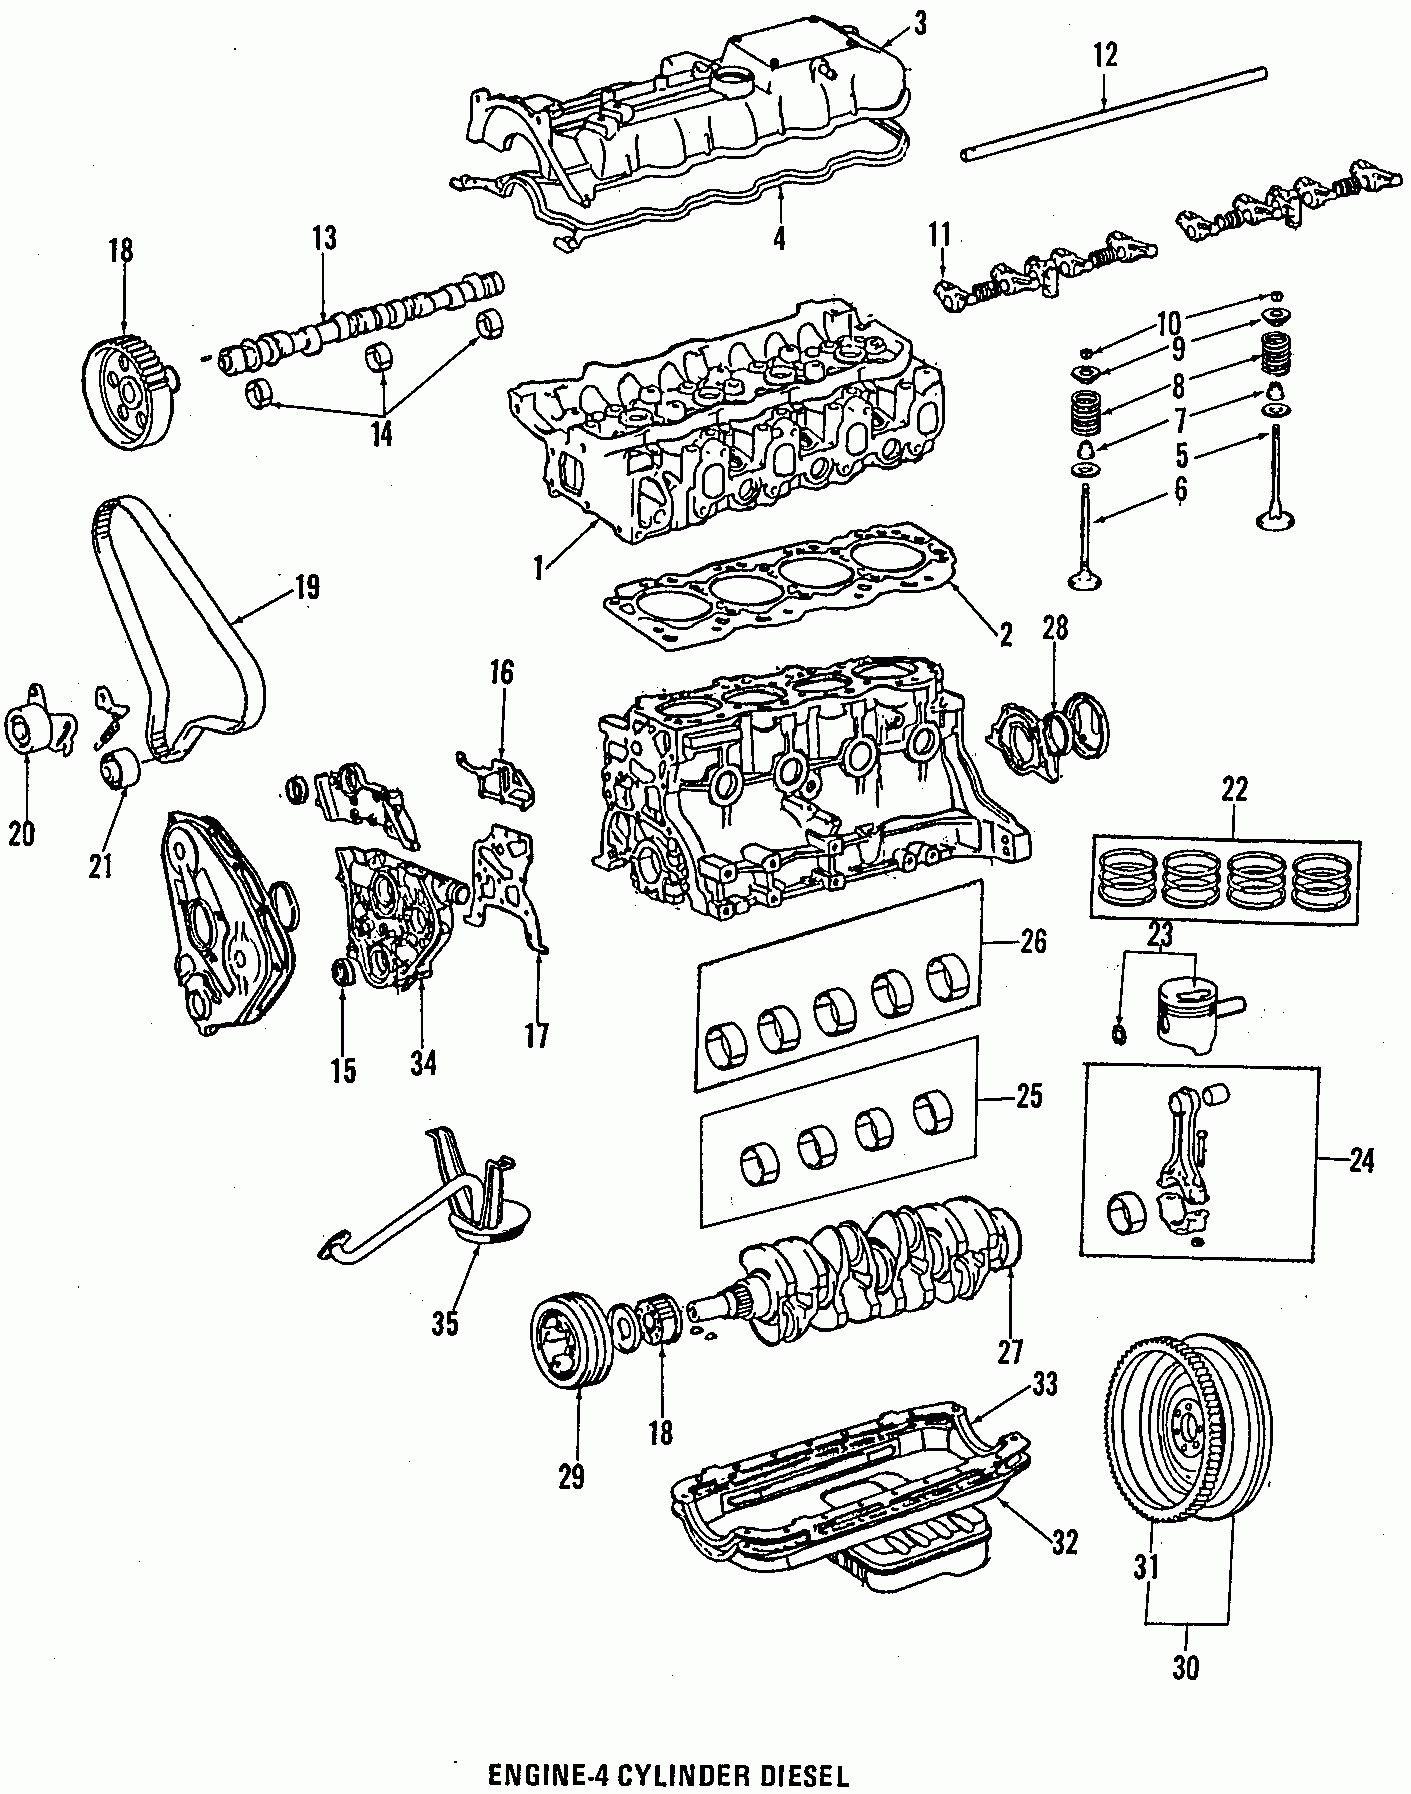 2005 toyota Tacoma Engine Diagram 2009 toyota Ta A Trailer